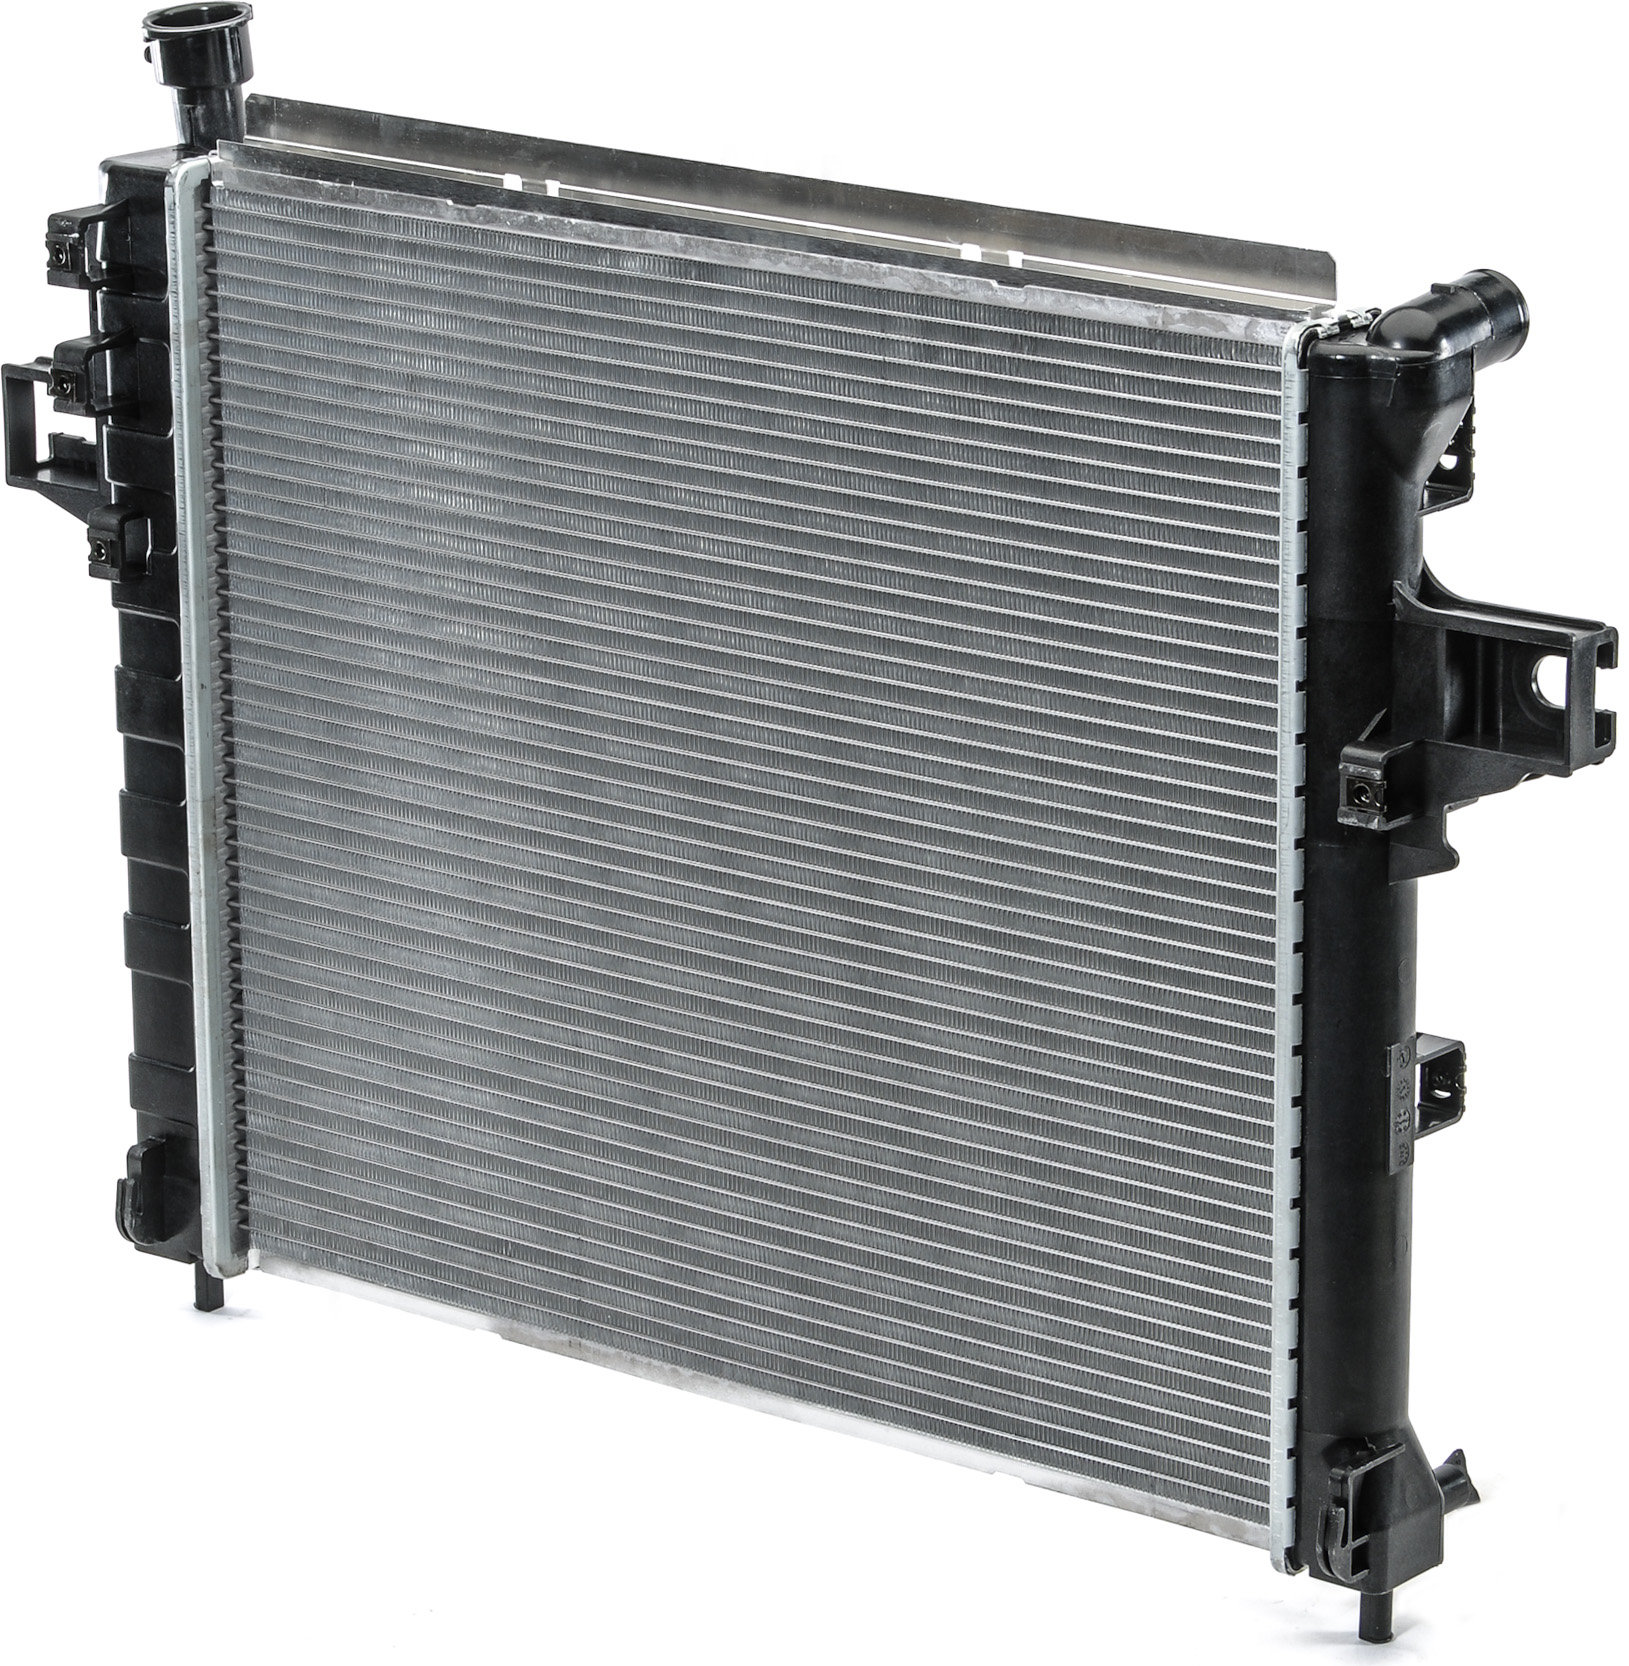 hight resolution of csf 3117 oe replacement radiator with plastic tank aluminum core for 99 04 jeep grand cherokee wj 4 7l quadratec